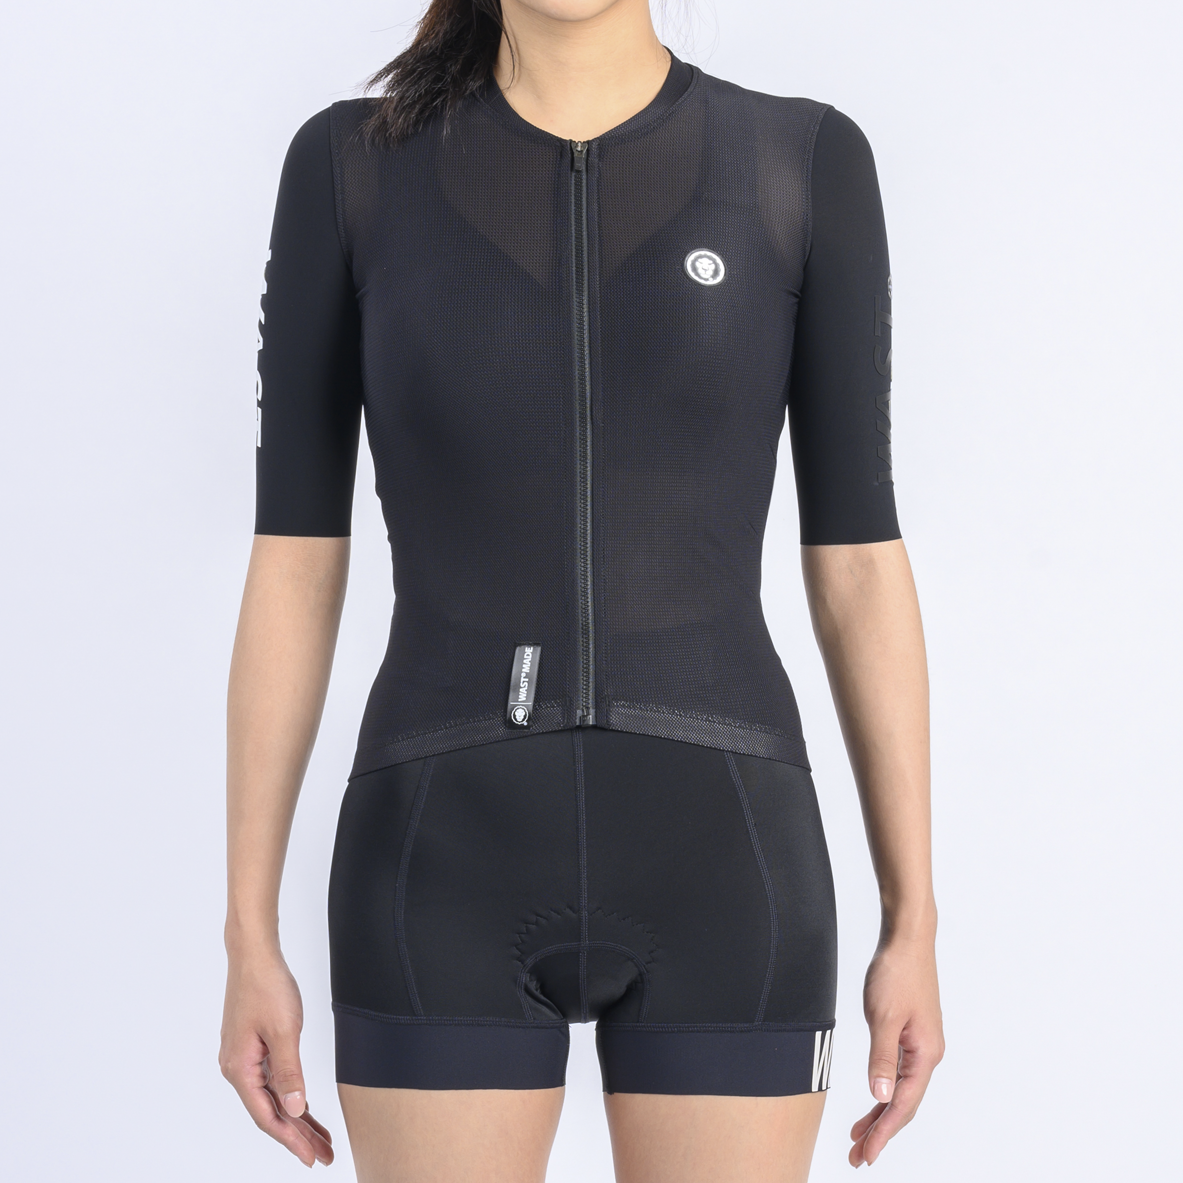 /archive/product/item/images/27a-w9-wbbproaeroshortjersey-bb-w-f.png